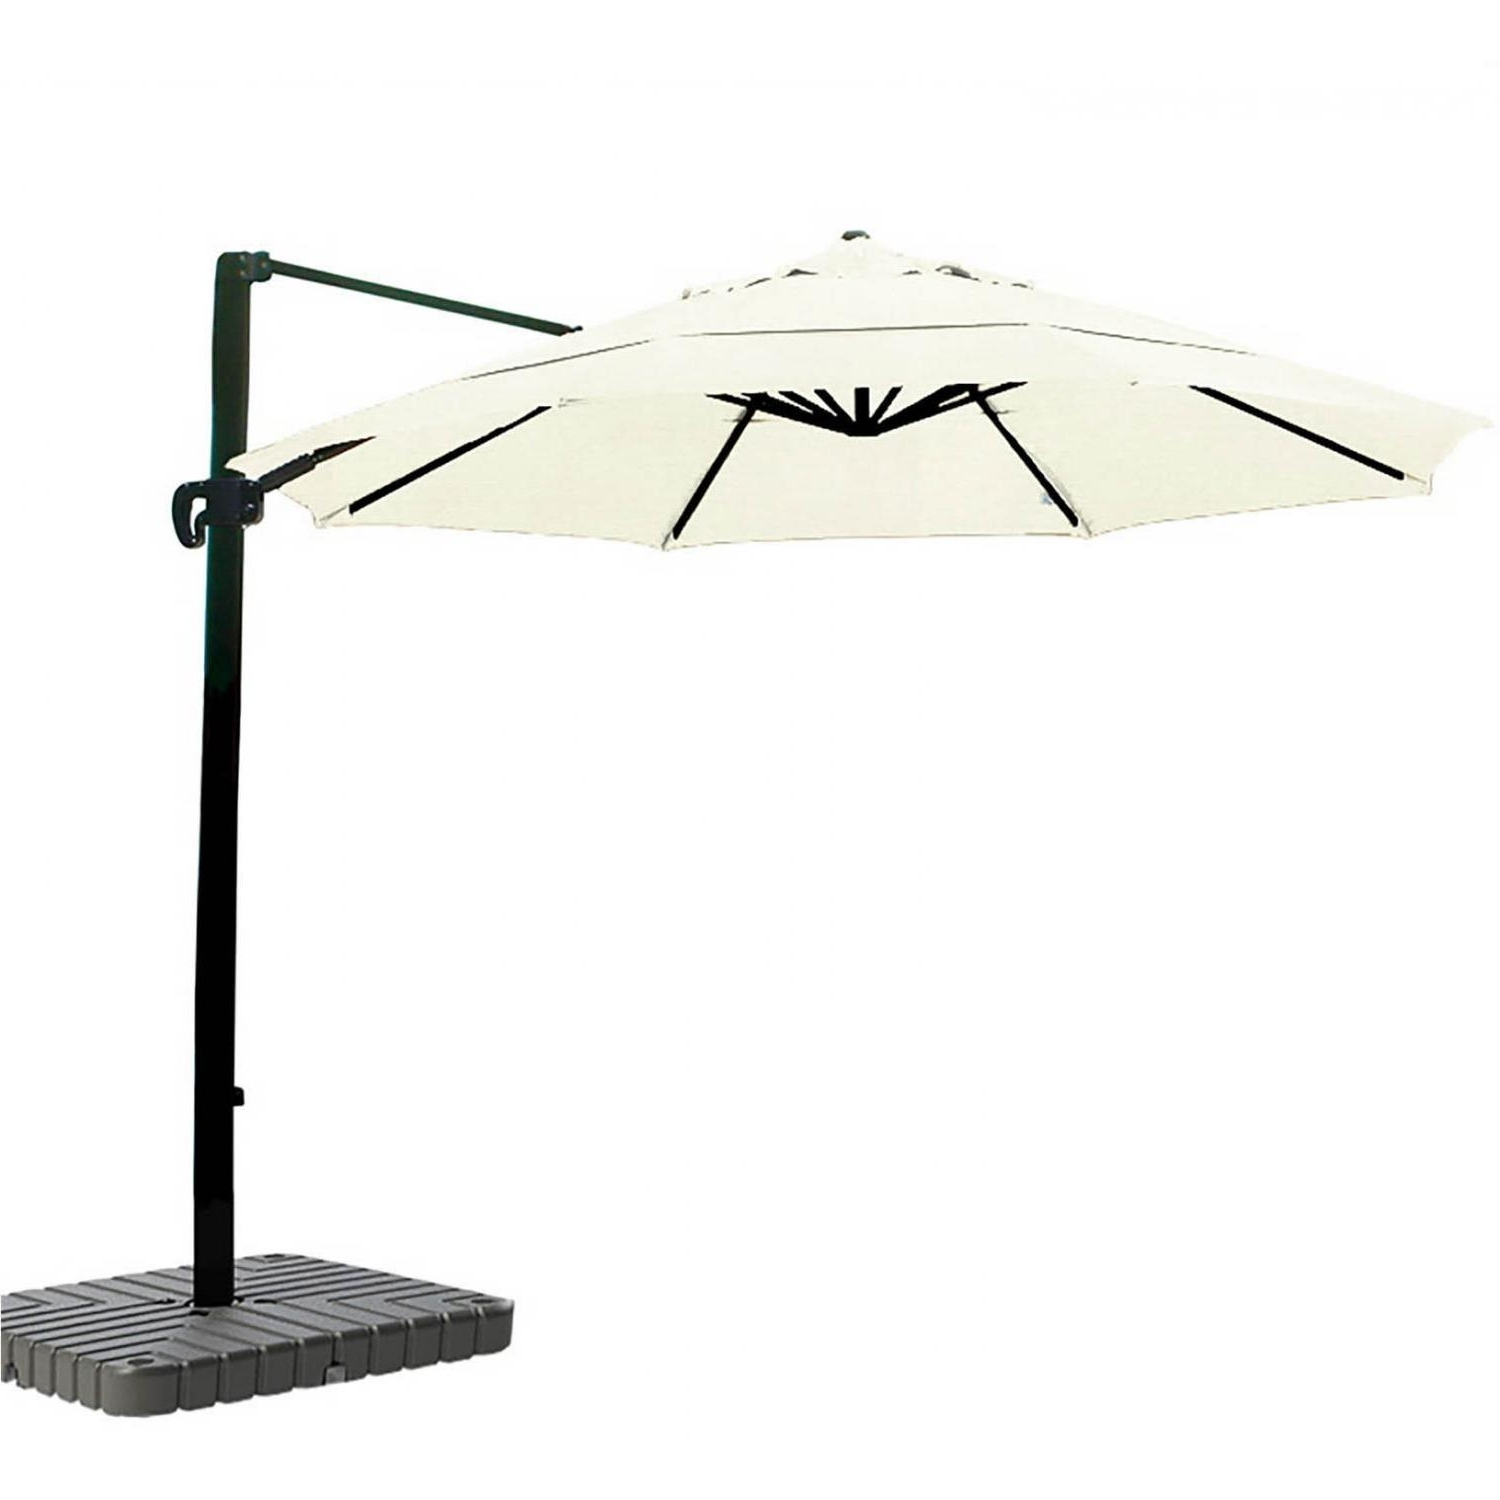 Recent California Umbrella 11 Ft Octagonal Aluminum Multi Position Tilt Intended For 11 Ft. Sunbrella Patio Umbrellas (Gallery 14 of 20)